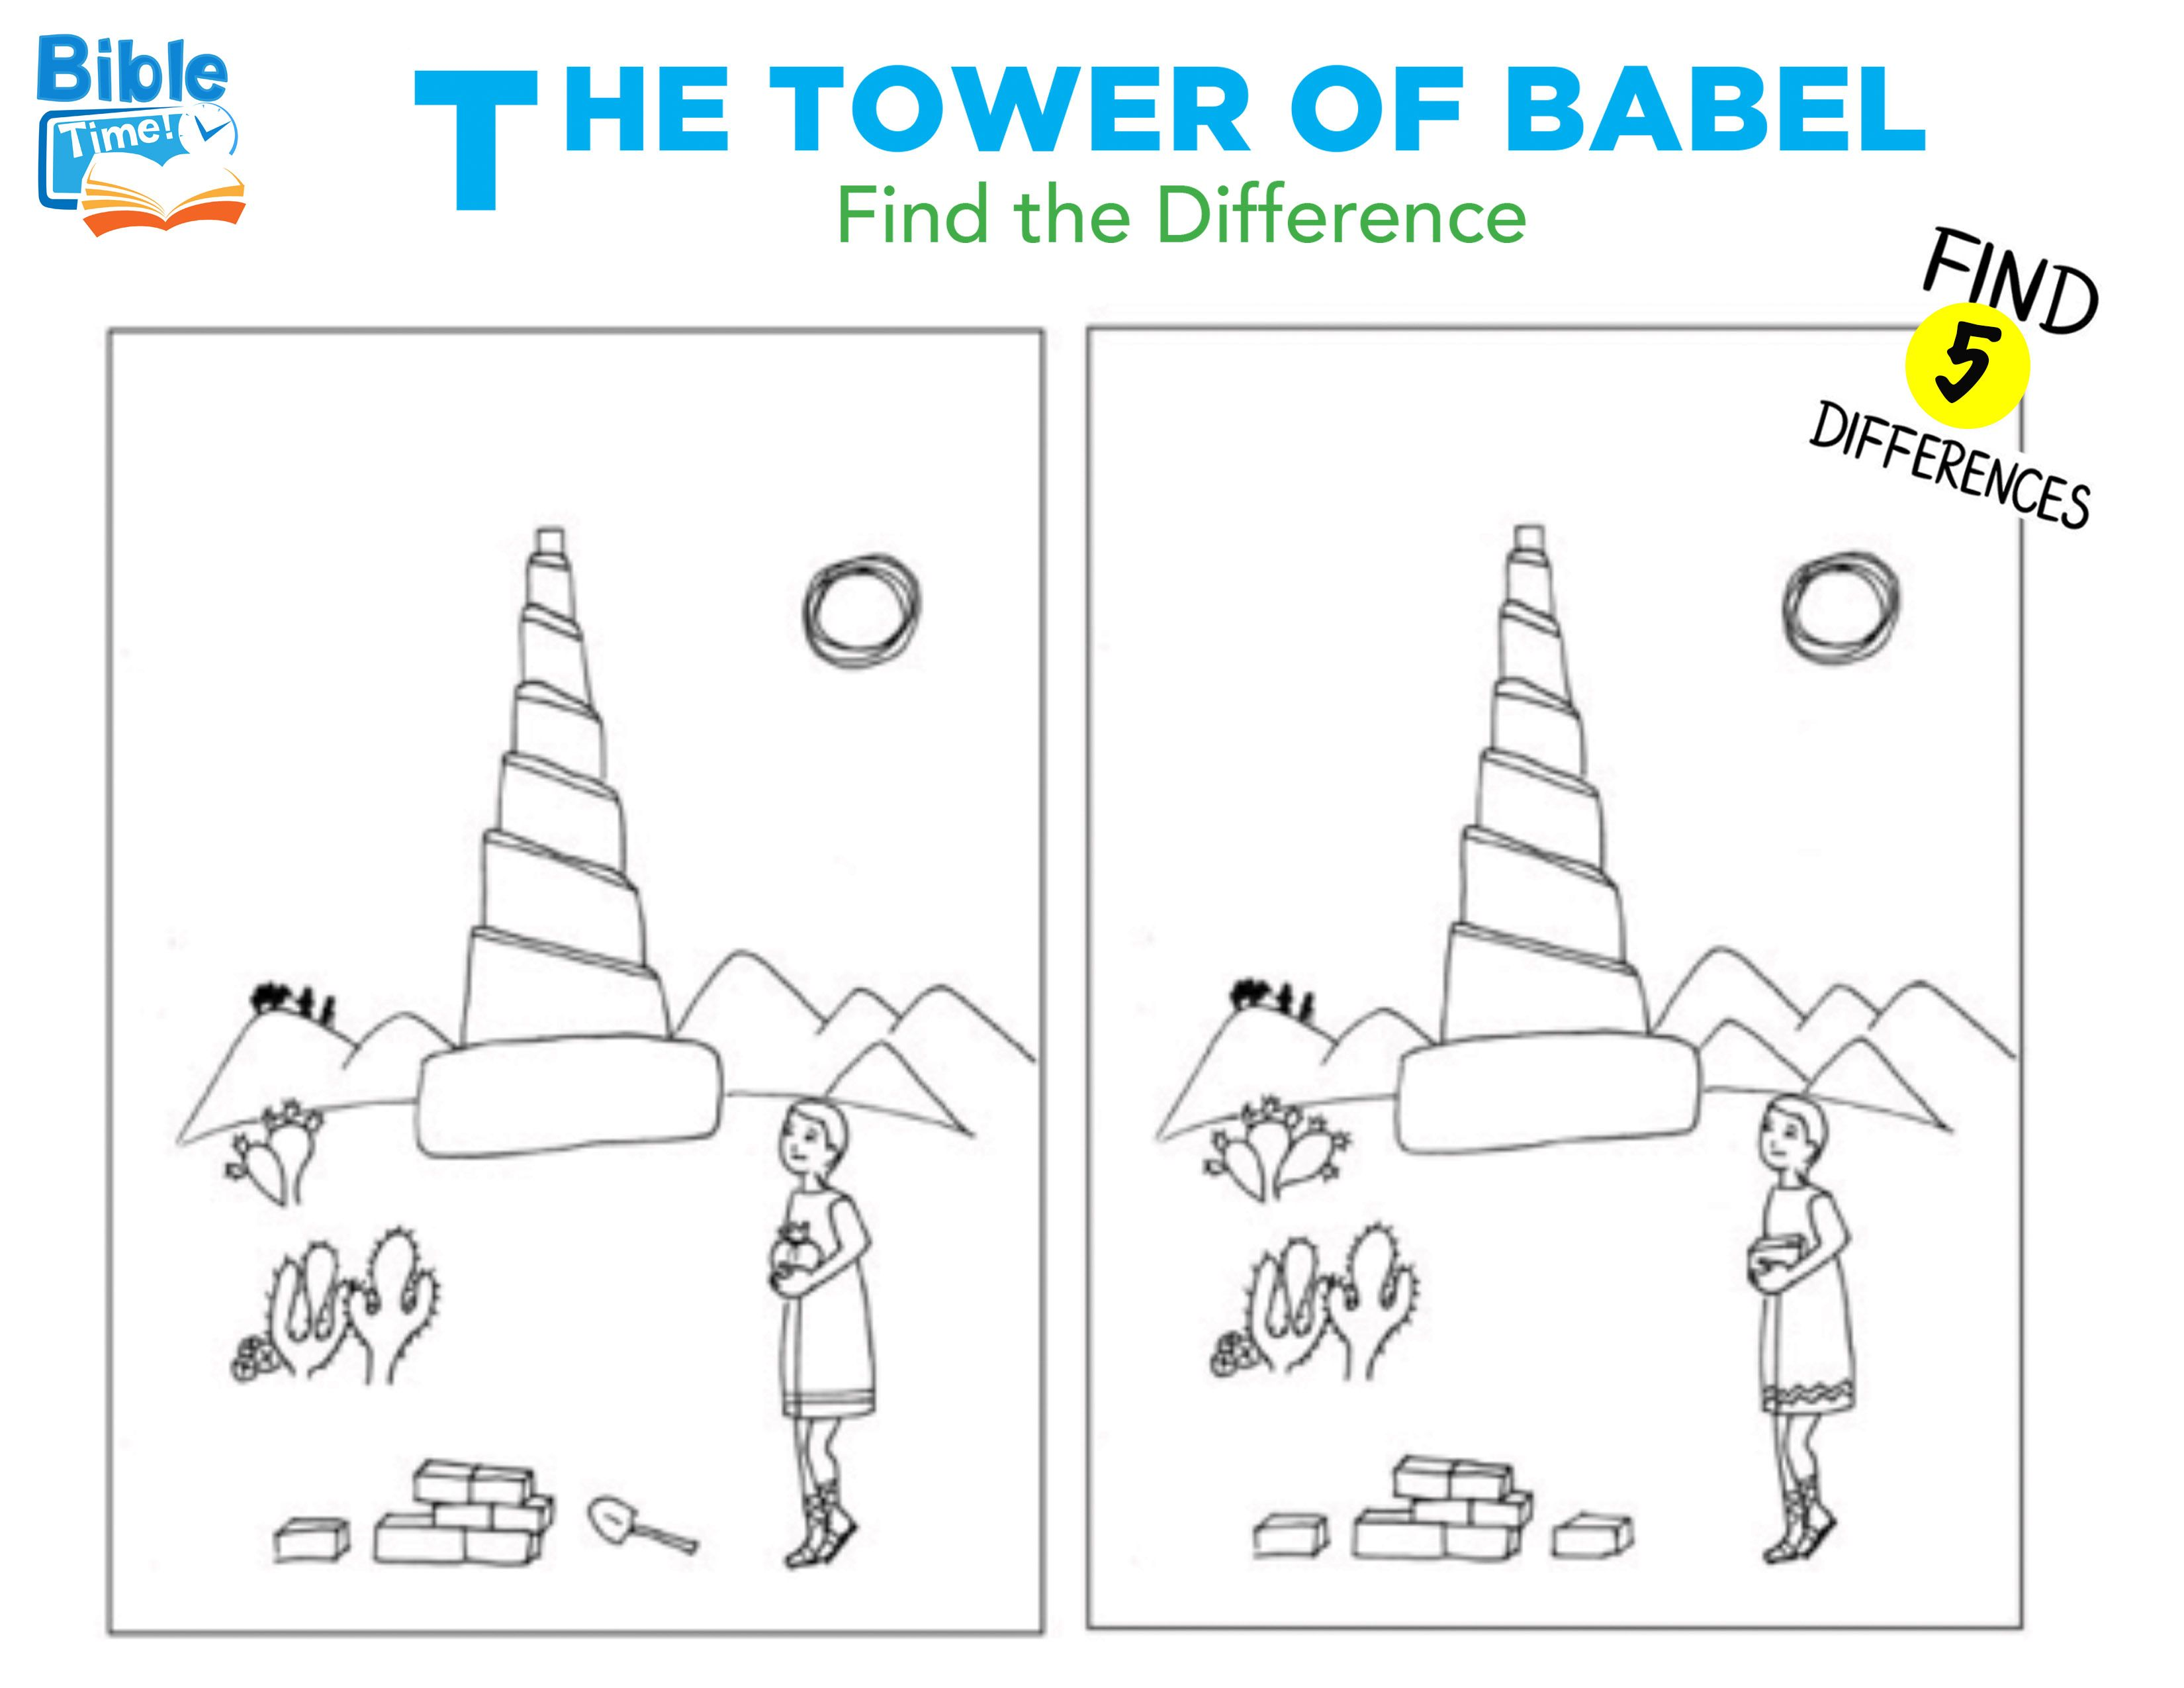 Free Preschool Tower Of Babel Activities Kids Bible Printable Children S Church Lessons Child Bible Lessons Bible Lessons For Kids Bible Stories For Kids